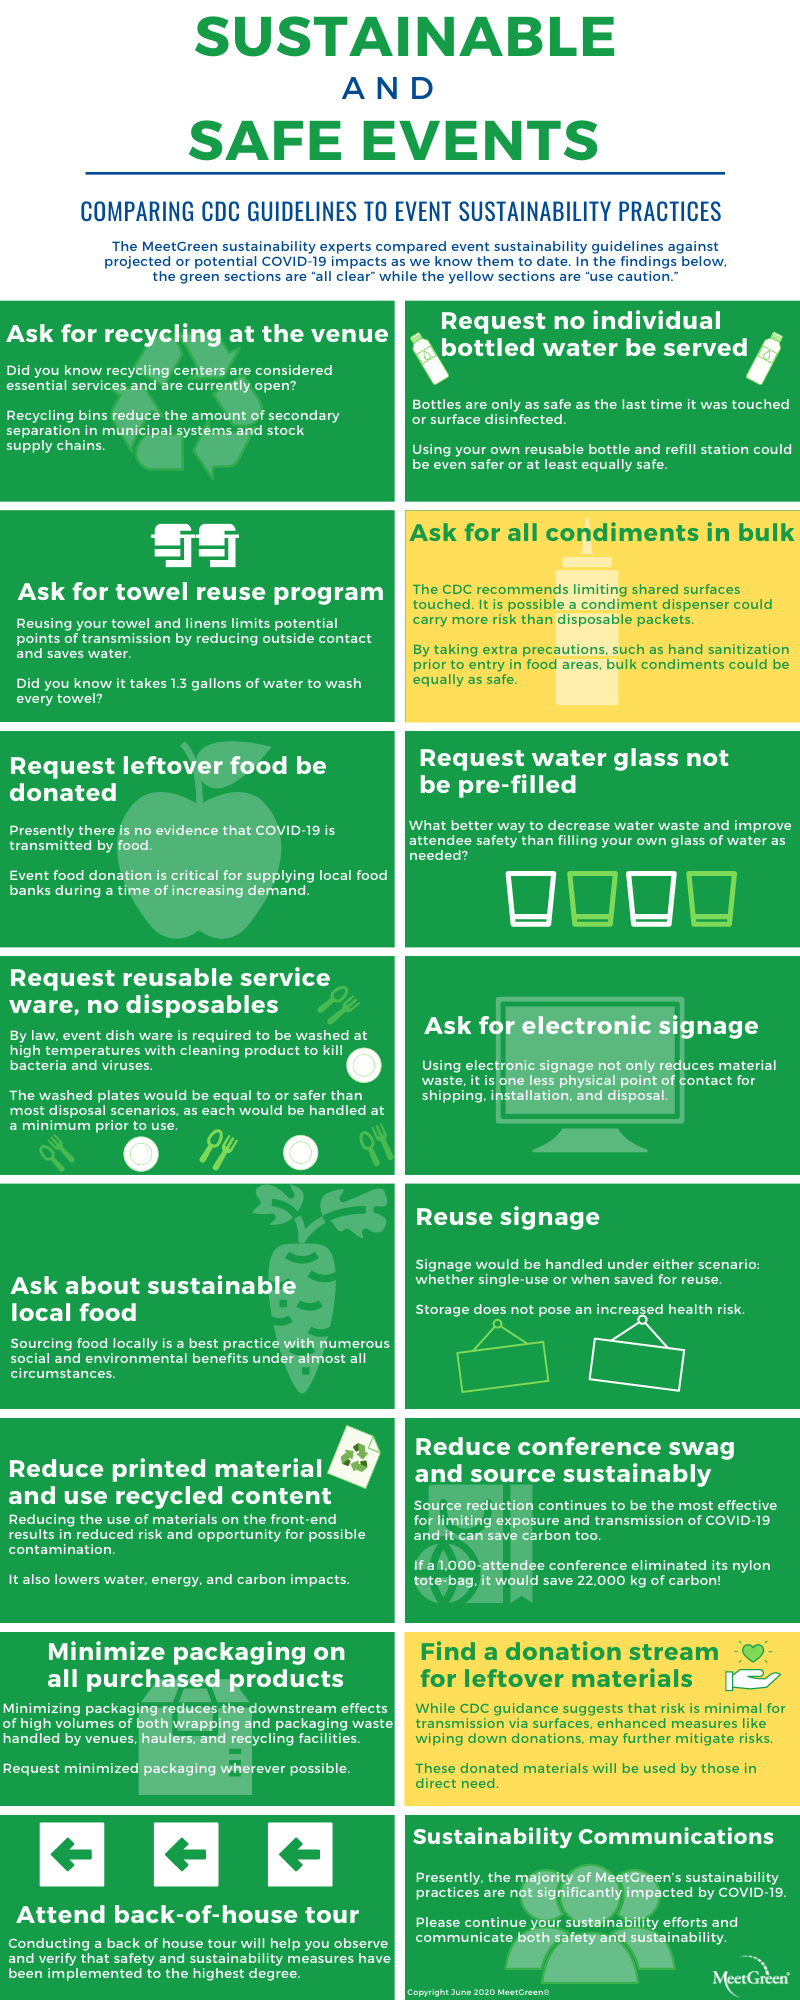 Sustainable & Safe Events Infographic